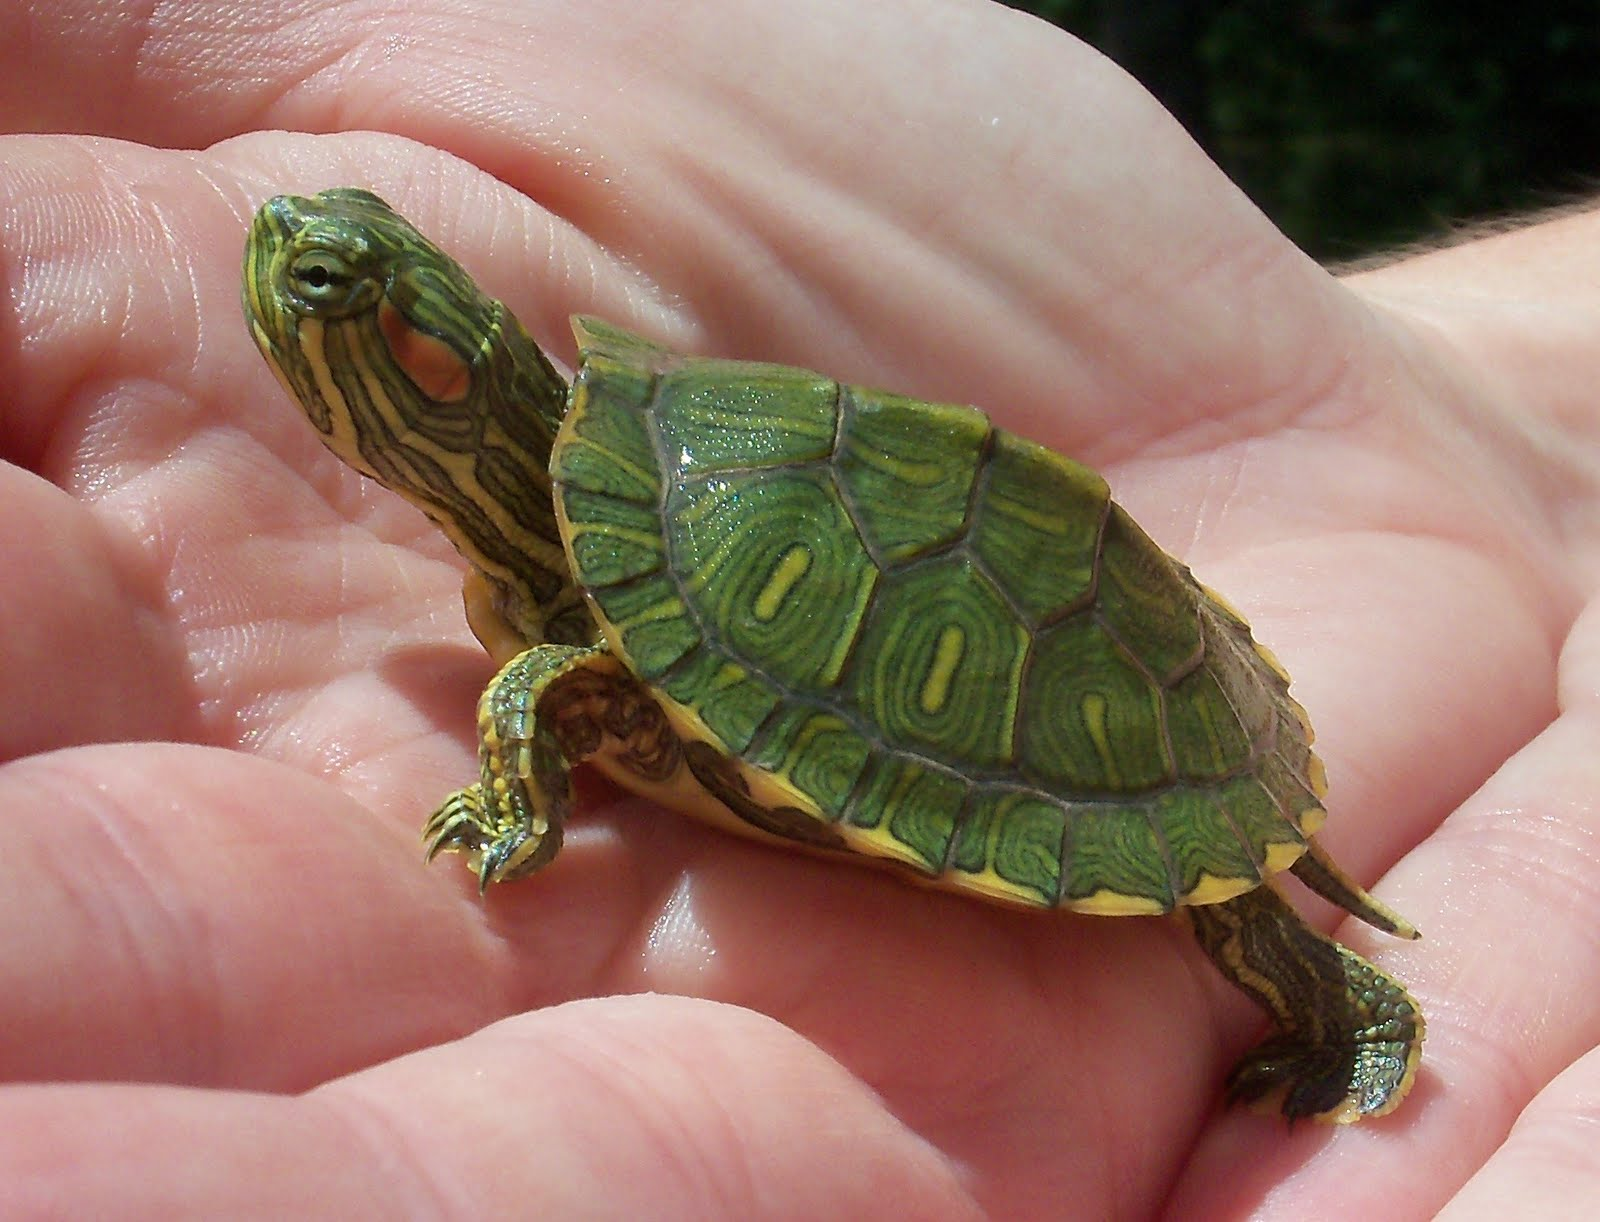 Angie Kay Dilmore Baby Turtle Finds a Home 1600x1222